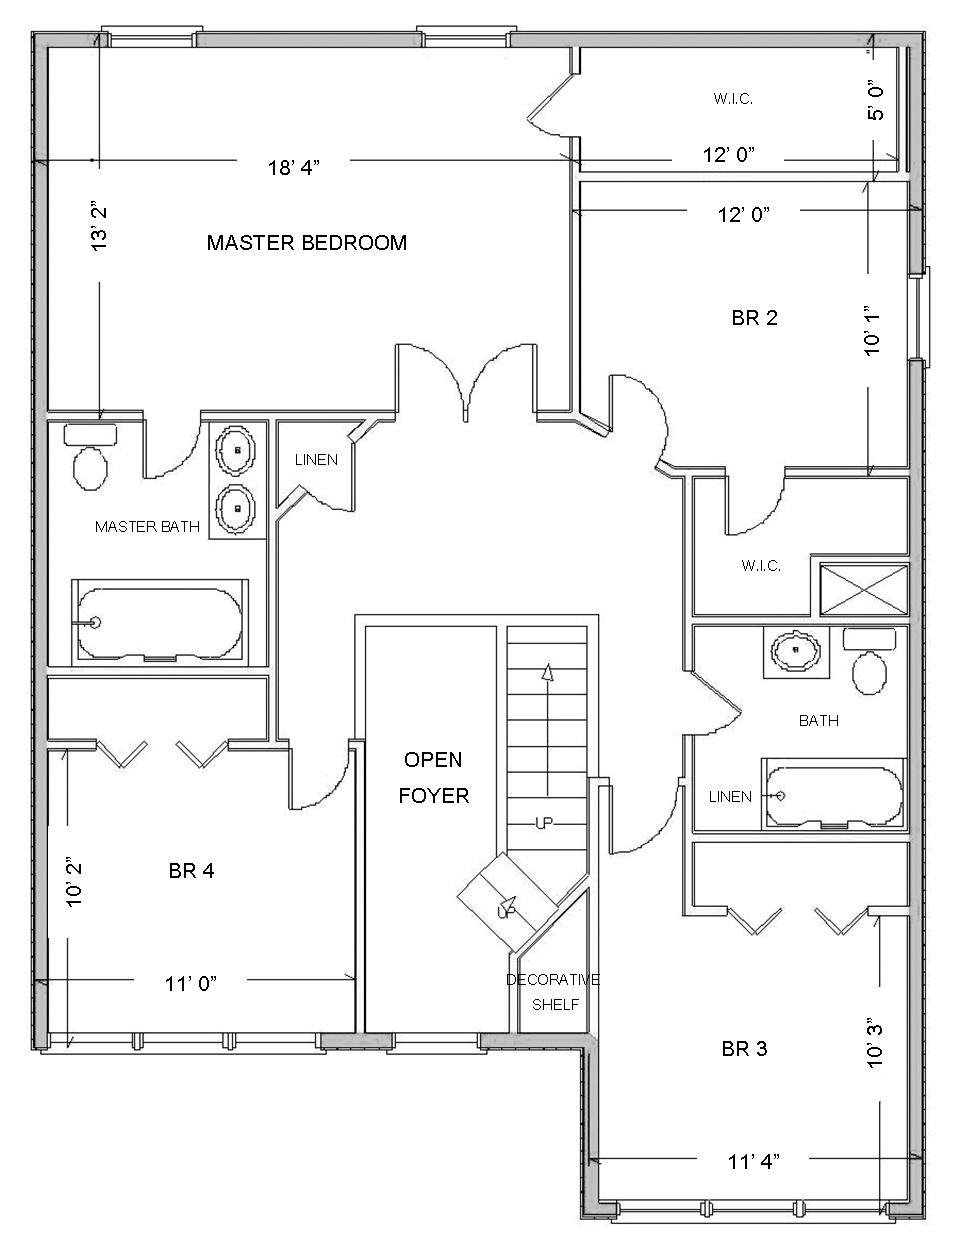 Digital smart draw floor plan with smartdraw software for Draw floor plan online